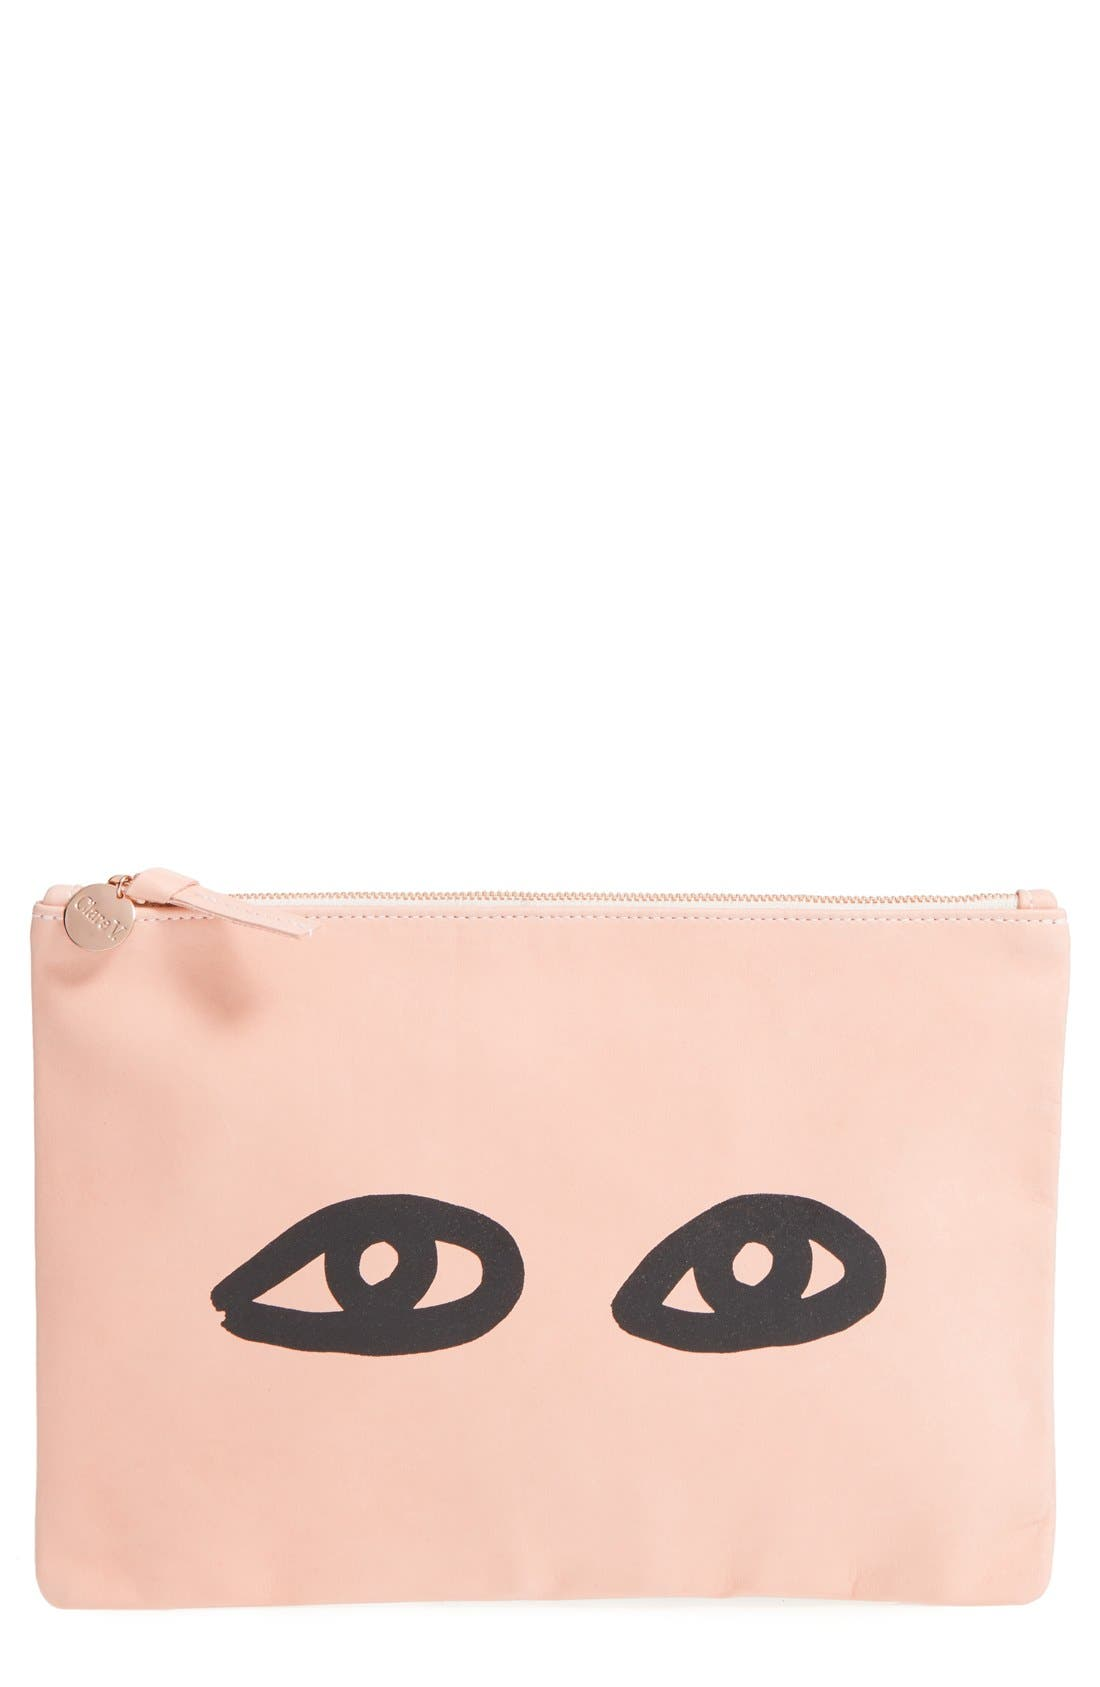 Main Image - Clare V. 'Eyes' Printed Nappa Leather Clutch